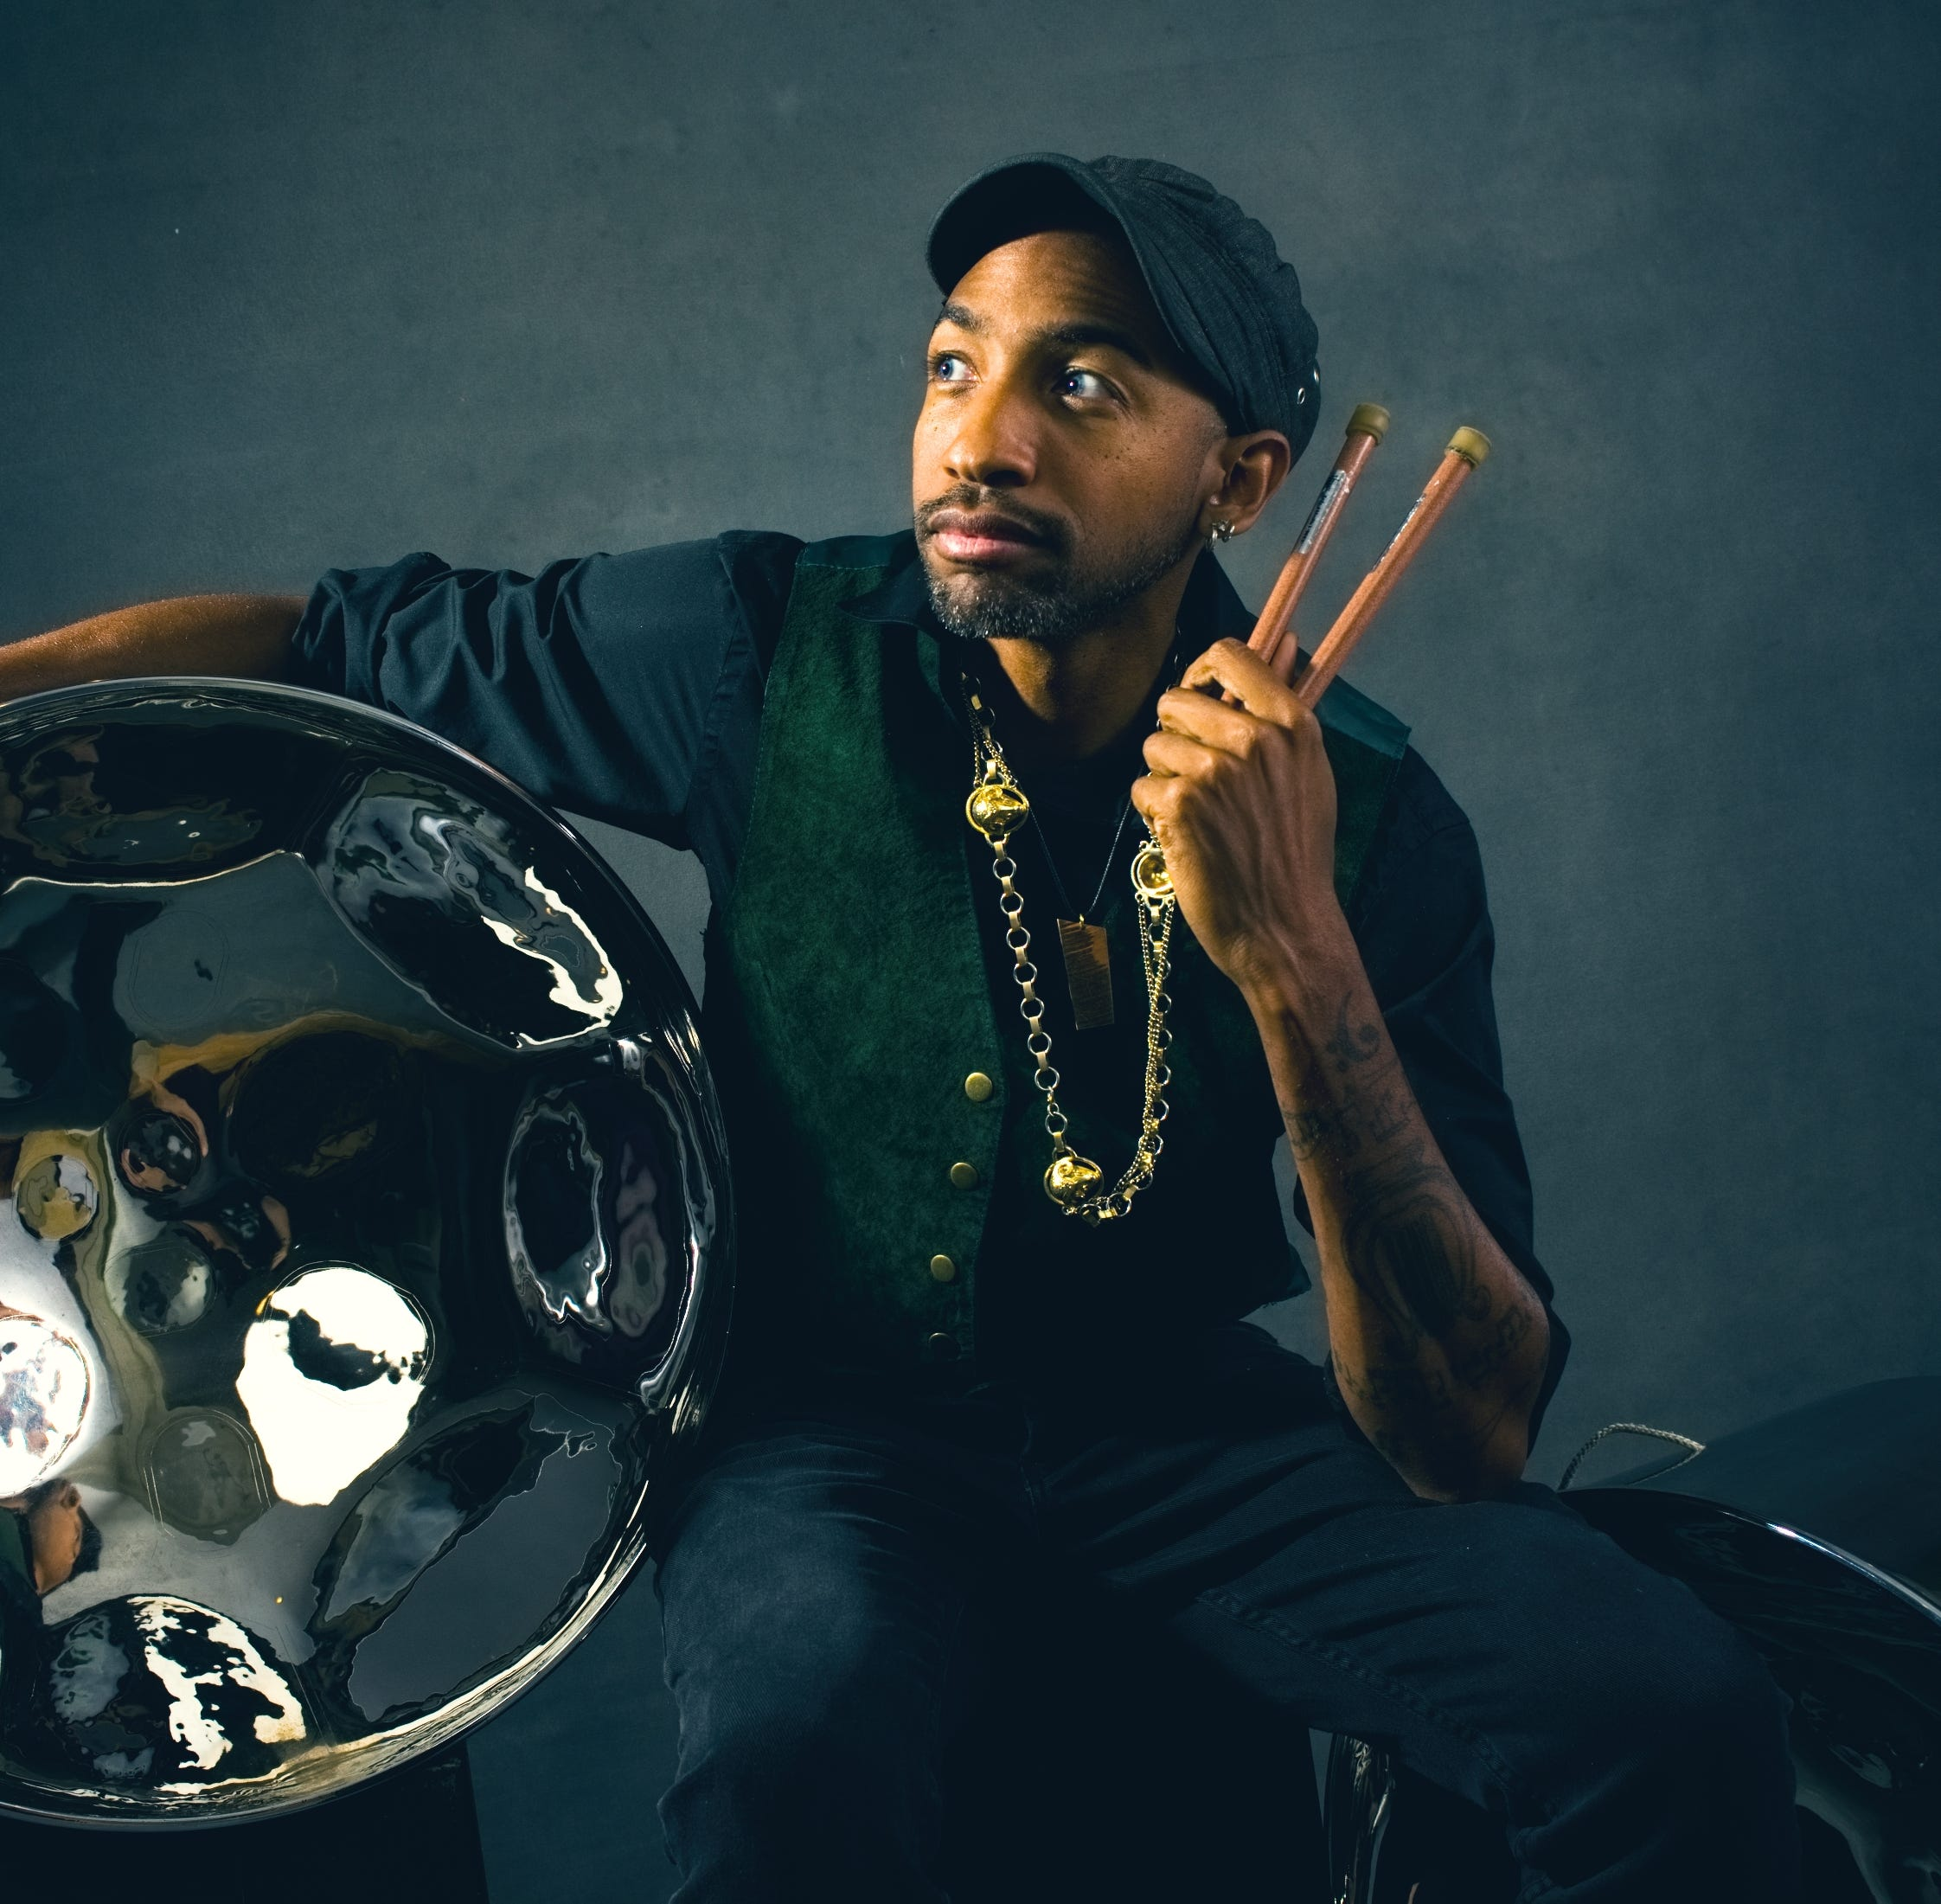 Funky-fun: Jonathan Scales Fourchestra brings fusion of sounds